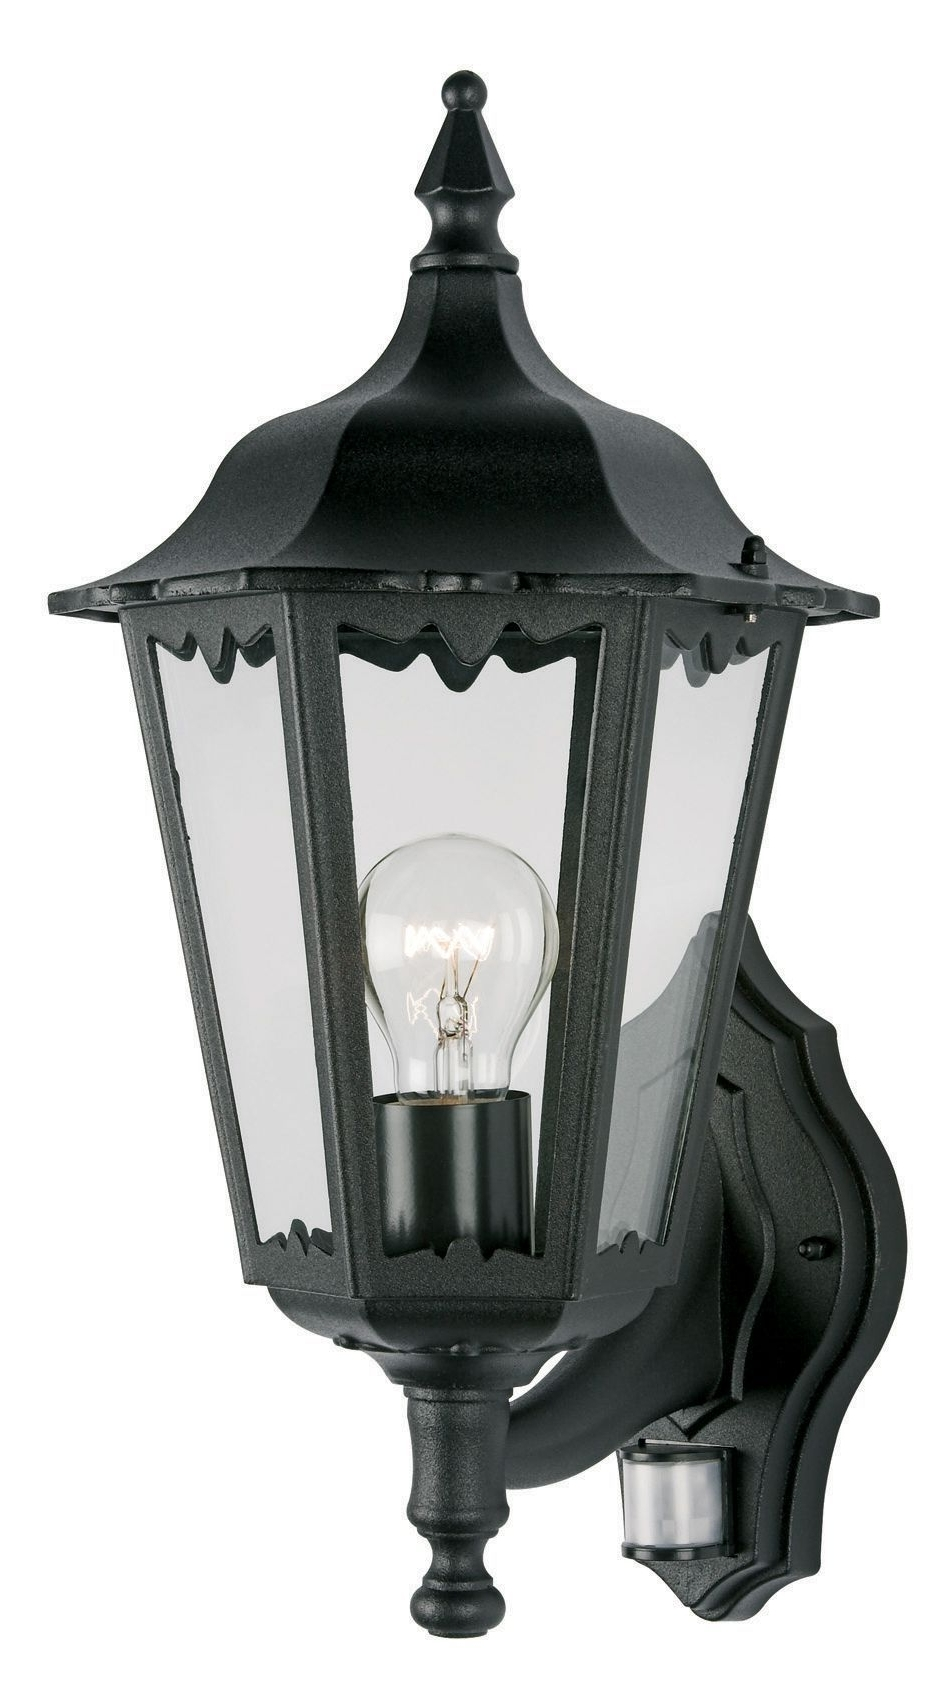 House Regarding Most Popular Outdoor Mains Lanterns (Gallery 11 of 20)